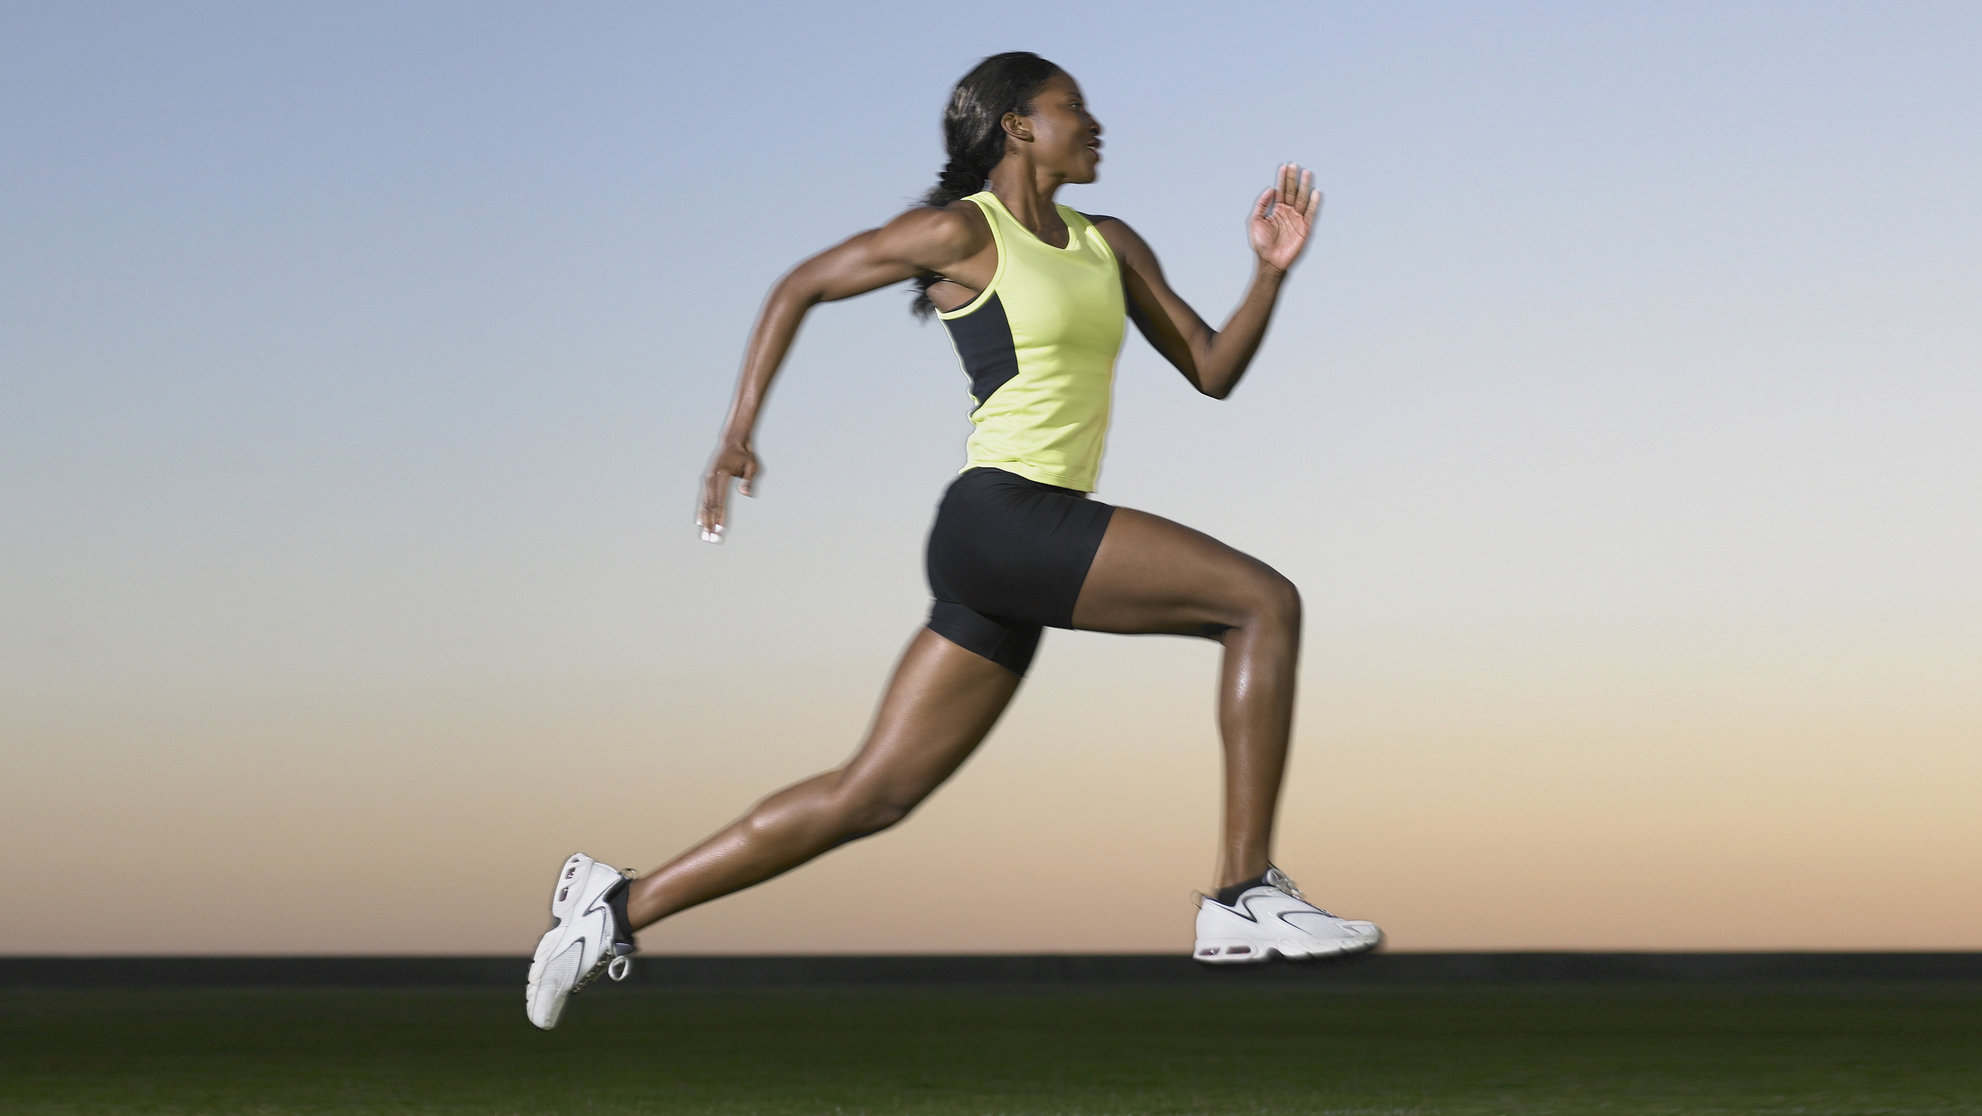 Body Impact Due to Excessive Exercising